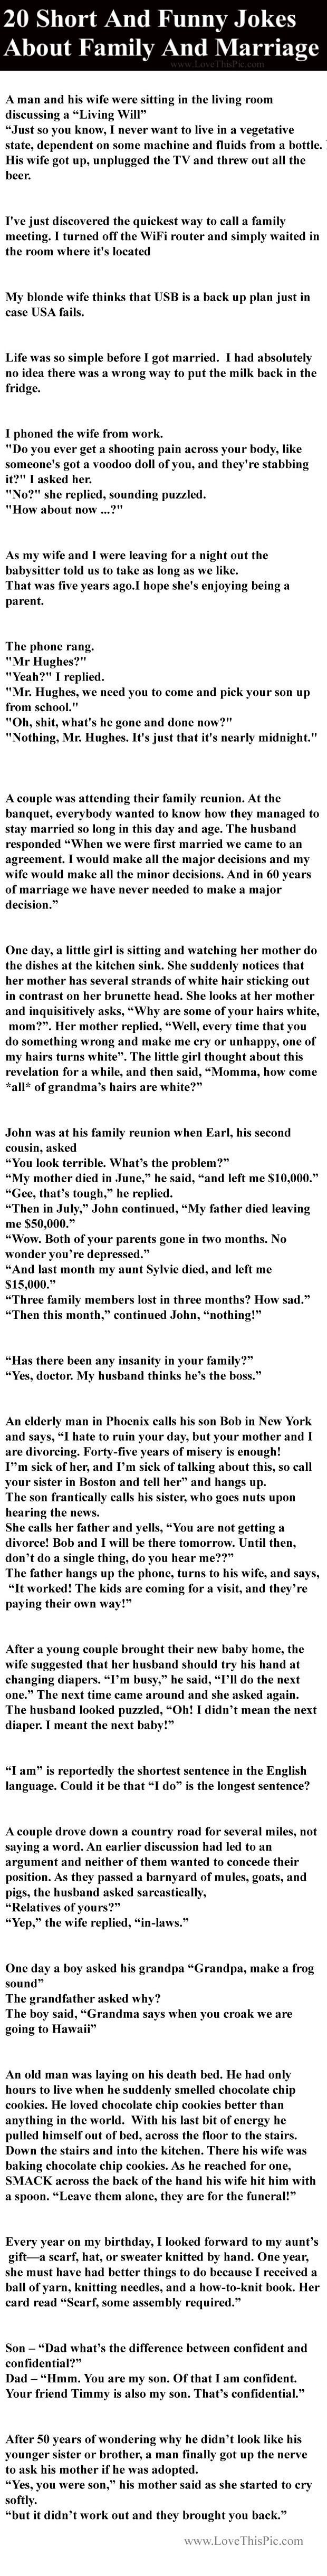 20 Short And Funny Jokes About Family And Marriage funny family jokes story lol…